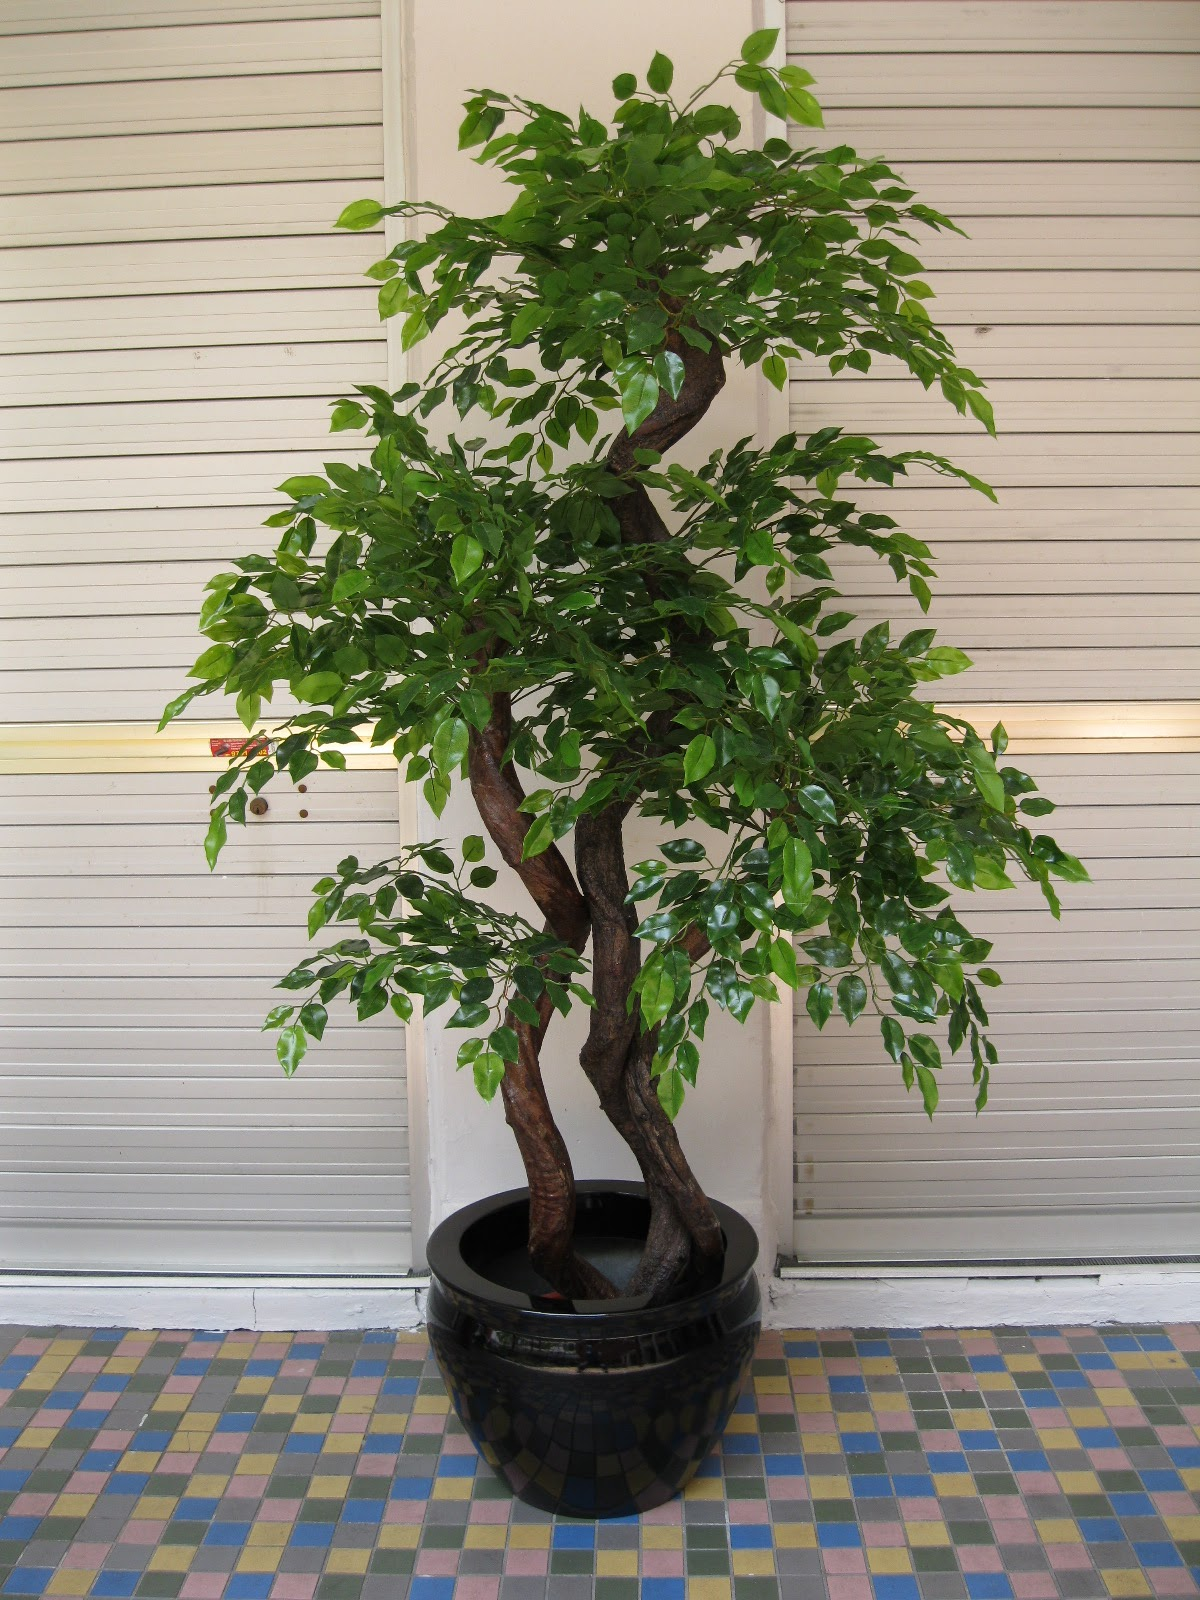 Hoi Kee Flower Shop 6ft Mini FicusBonsai With Fish Bowl Planter